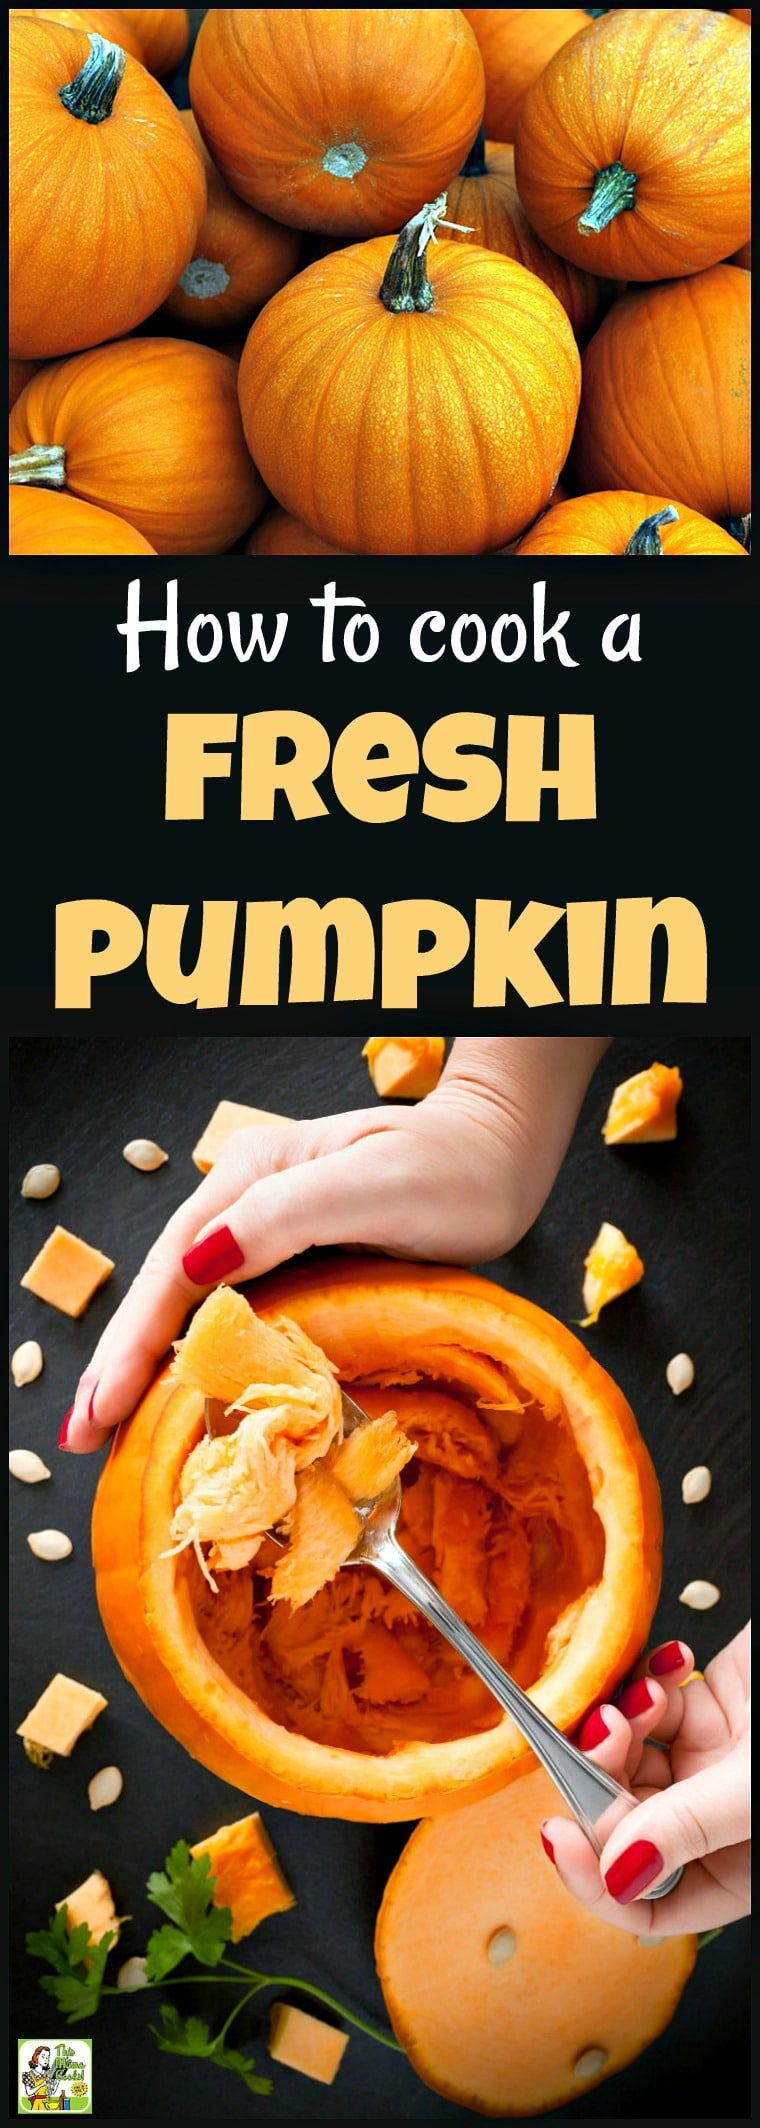 Want to know how to cook fresh pumpkin for Halloween and Thanksgiving recipes? It's easy to do! Plus two ways on how to cook pumpkin seeds. Click to get the pumpkin puree recipe! #pumpkin #pumpkinpie #cookingpumpkin #halloween #thanksgiving #pumpkinseeds